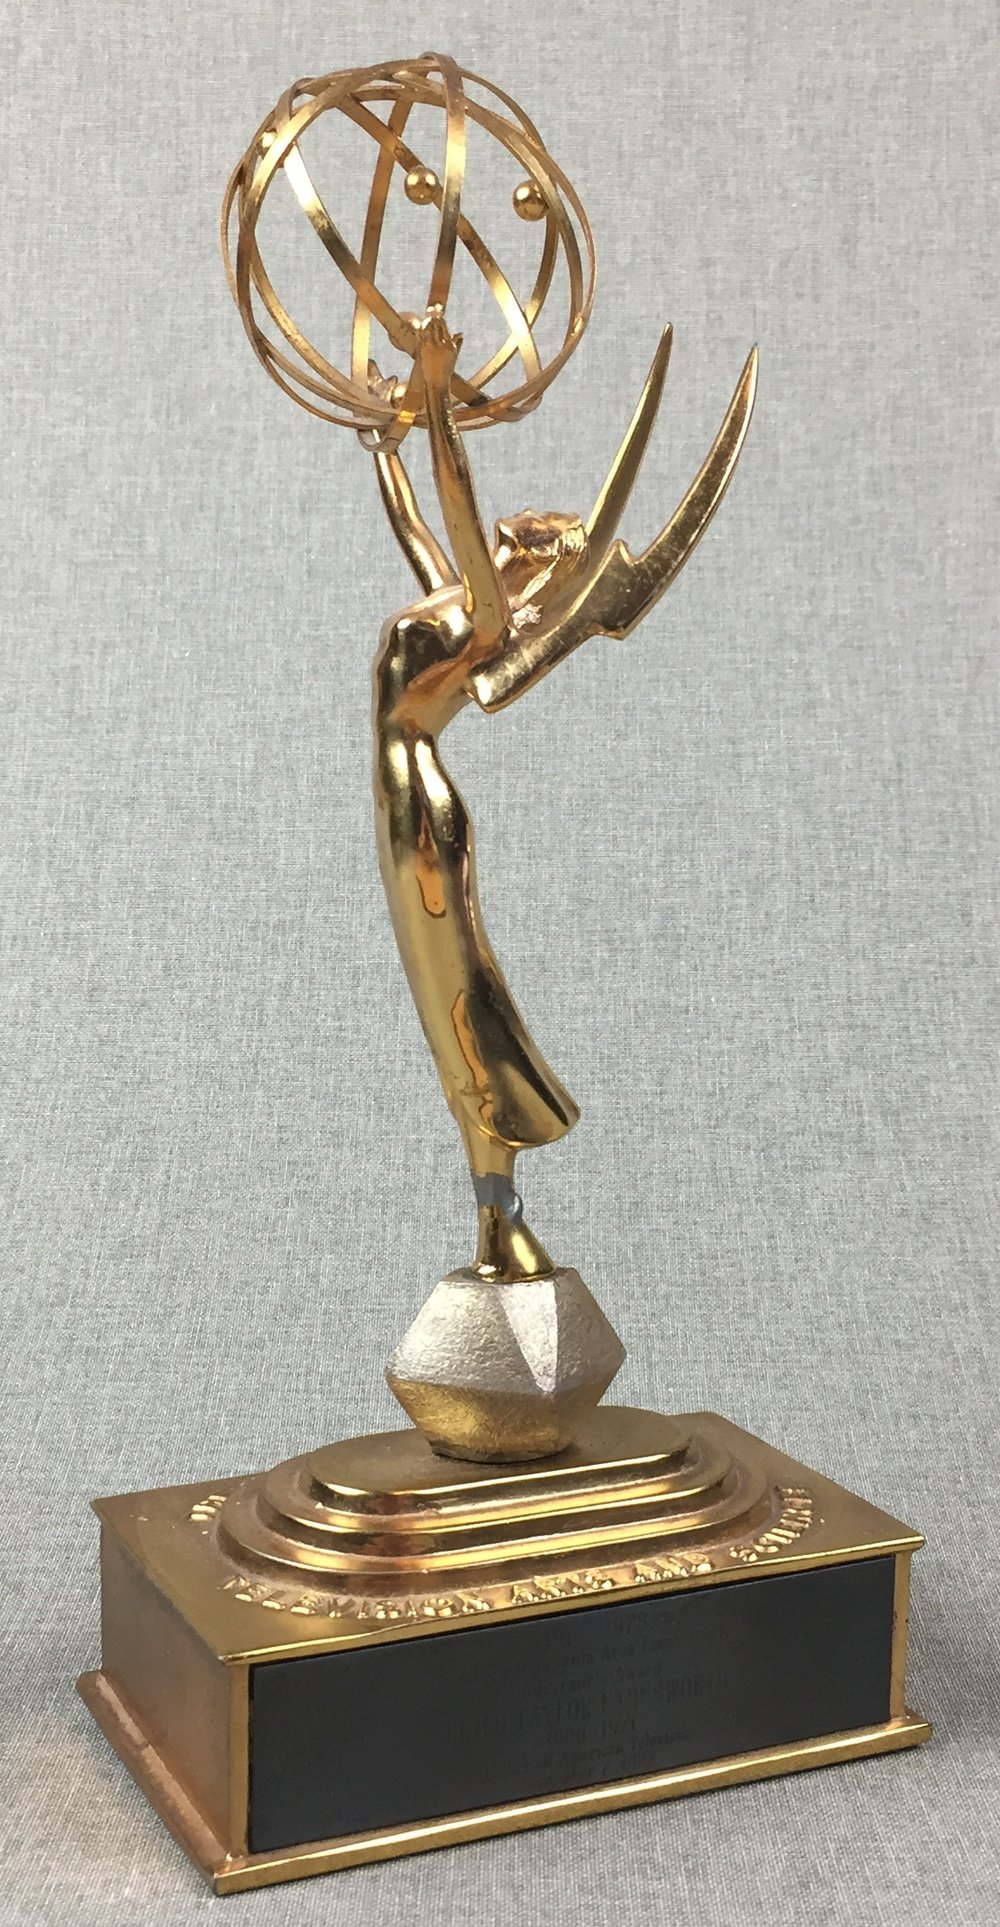 Since 2003, the Academy of Television Arts & Sciences (ATAS) has awarded the Philo T. Farnsworth Corporate Achievement Award to companies who have significantly affected the state of television and broadcast engineering.